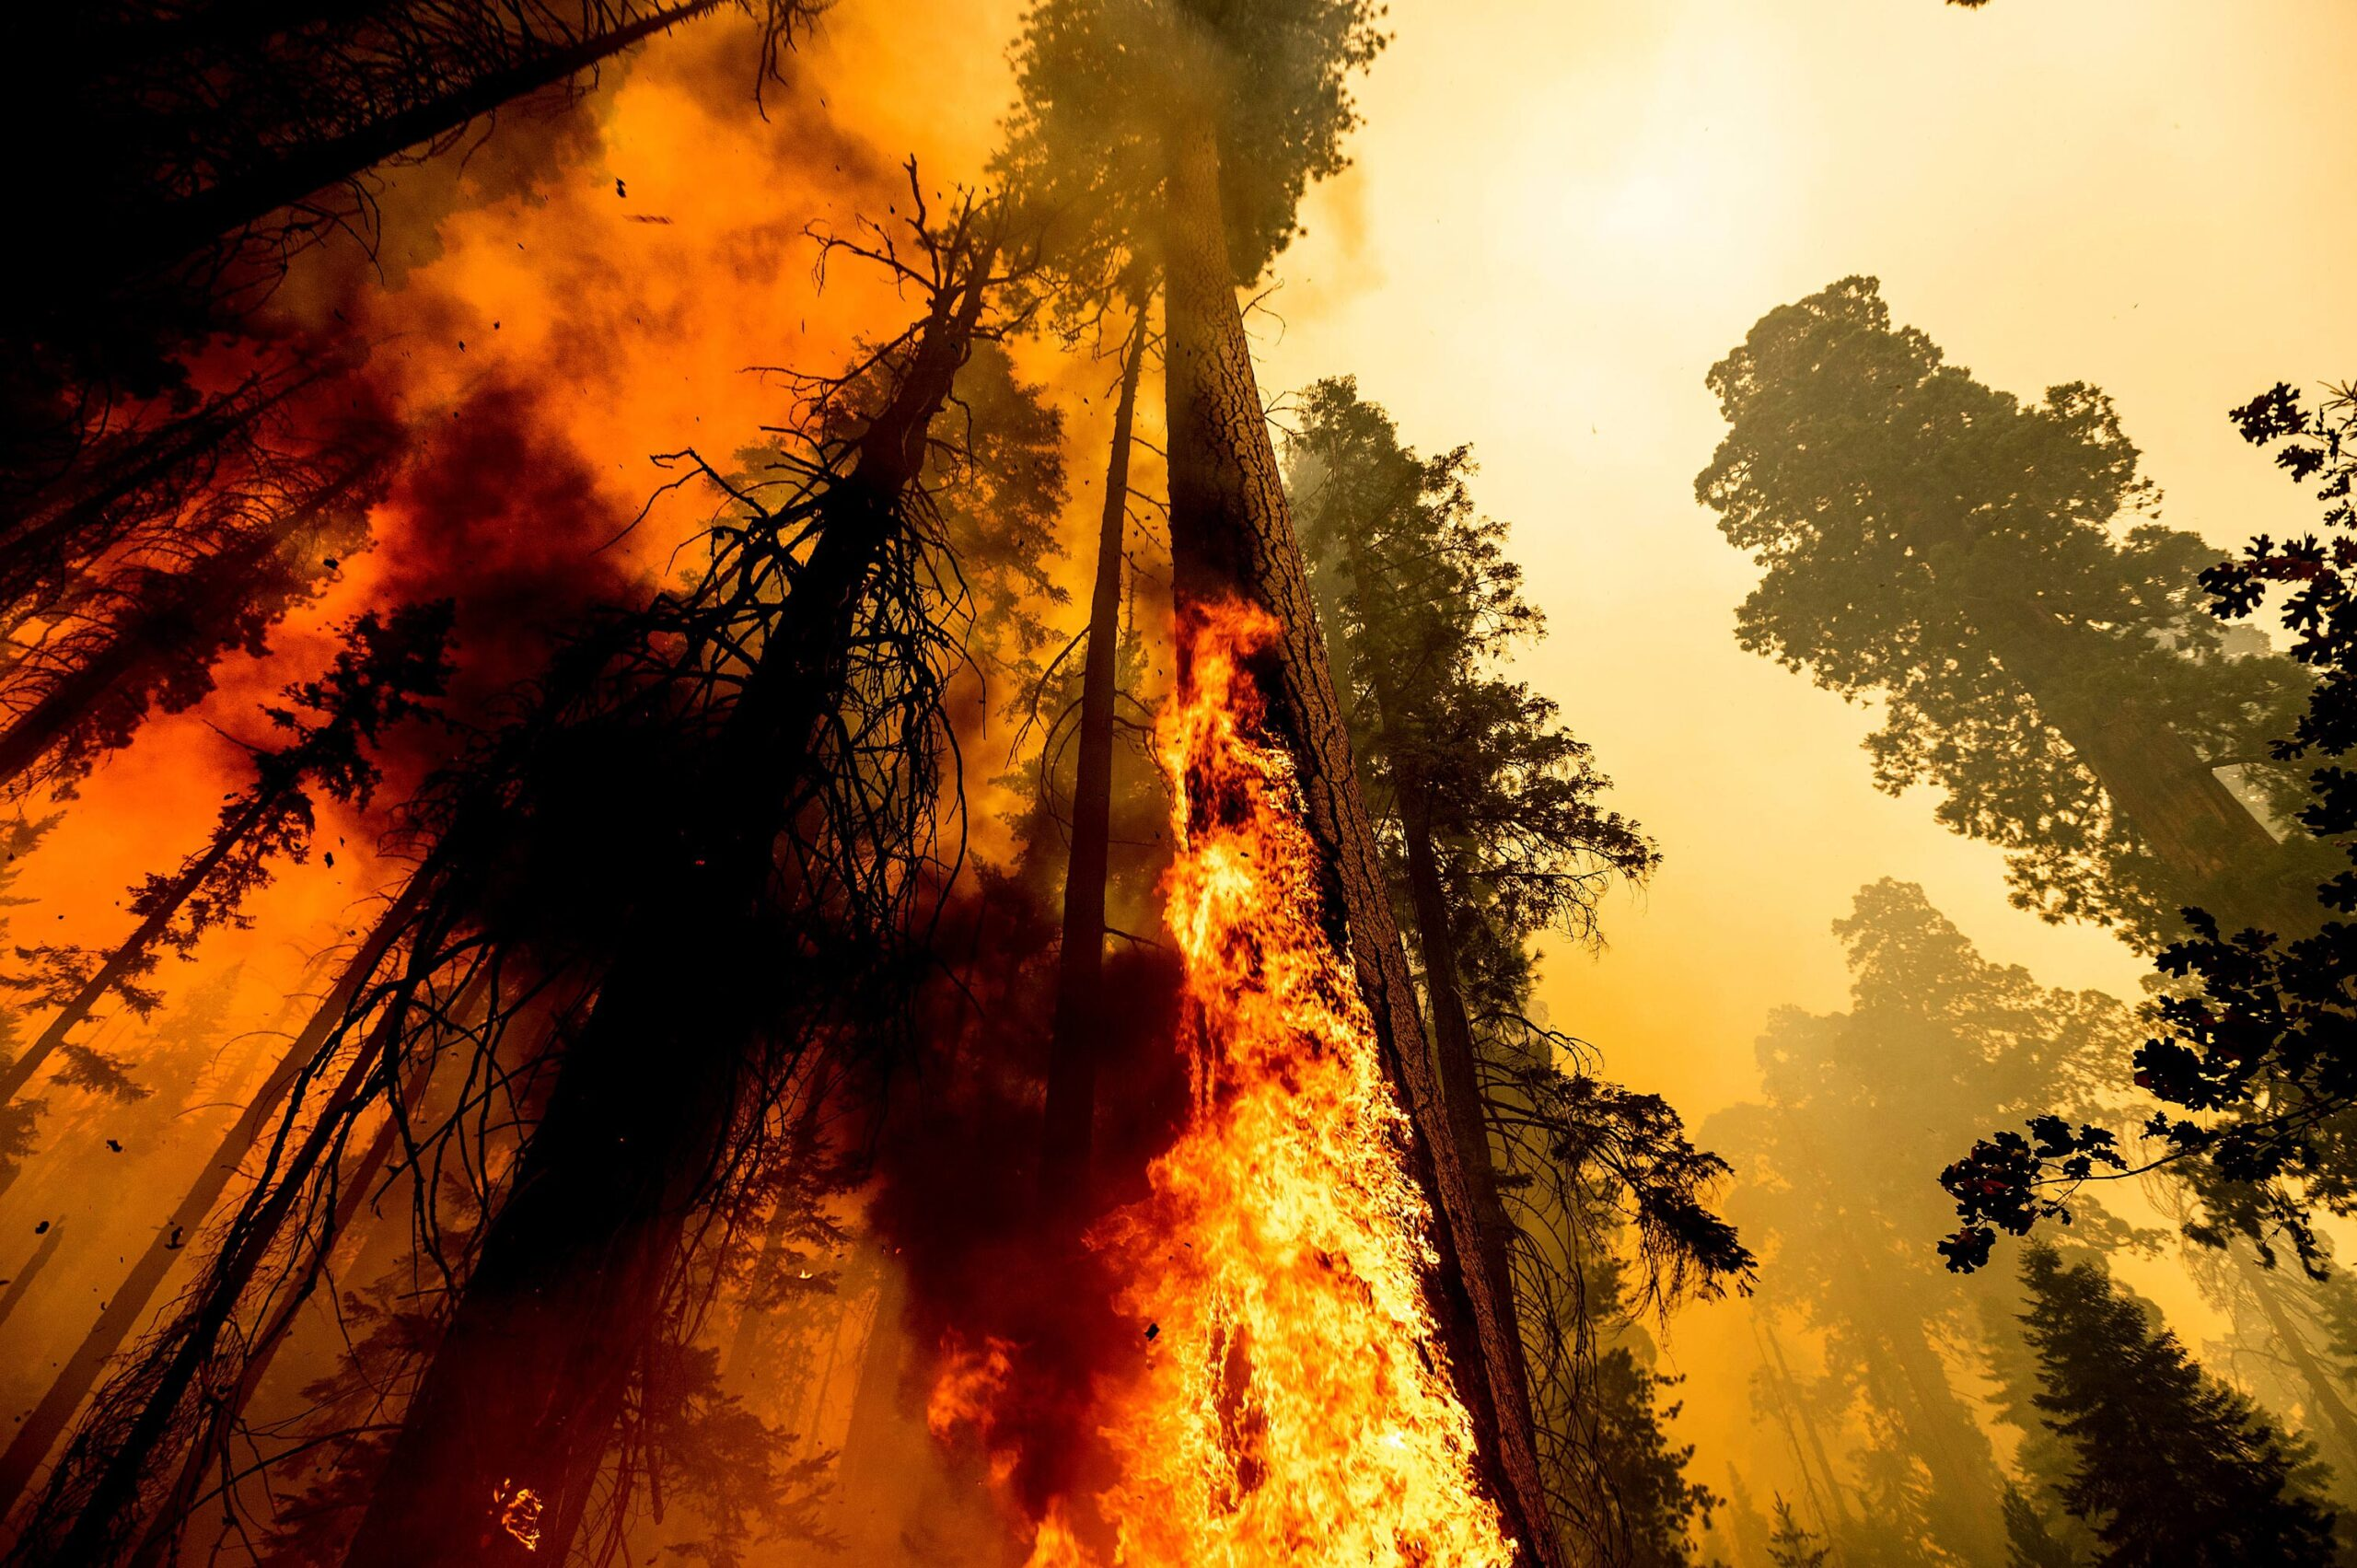 <i>Noah Berger/AP</i><br/>Flames lick up a tree as the Windy Fire burns in the Trail of 100 Giants grove in Sequoia National Forest